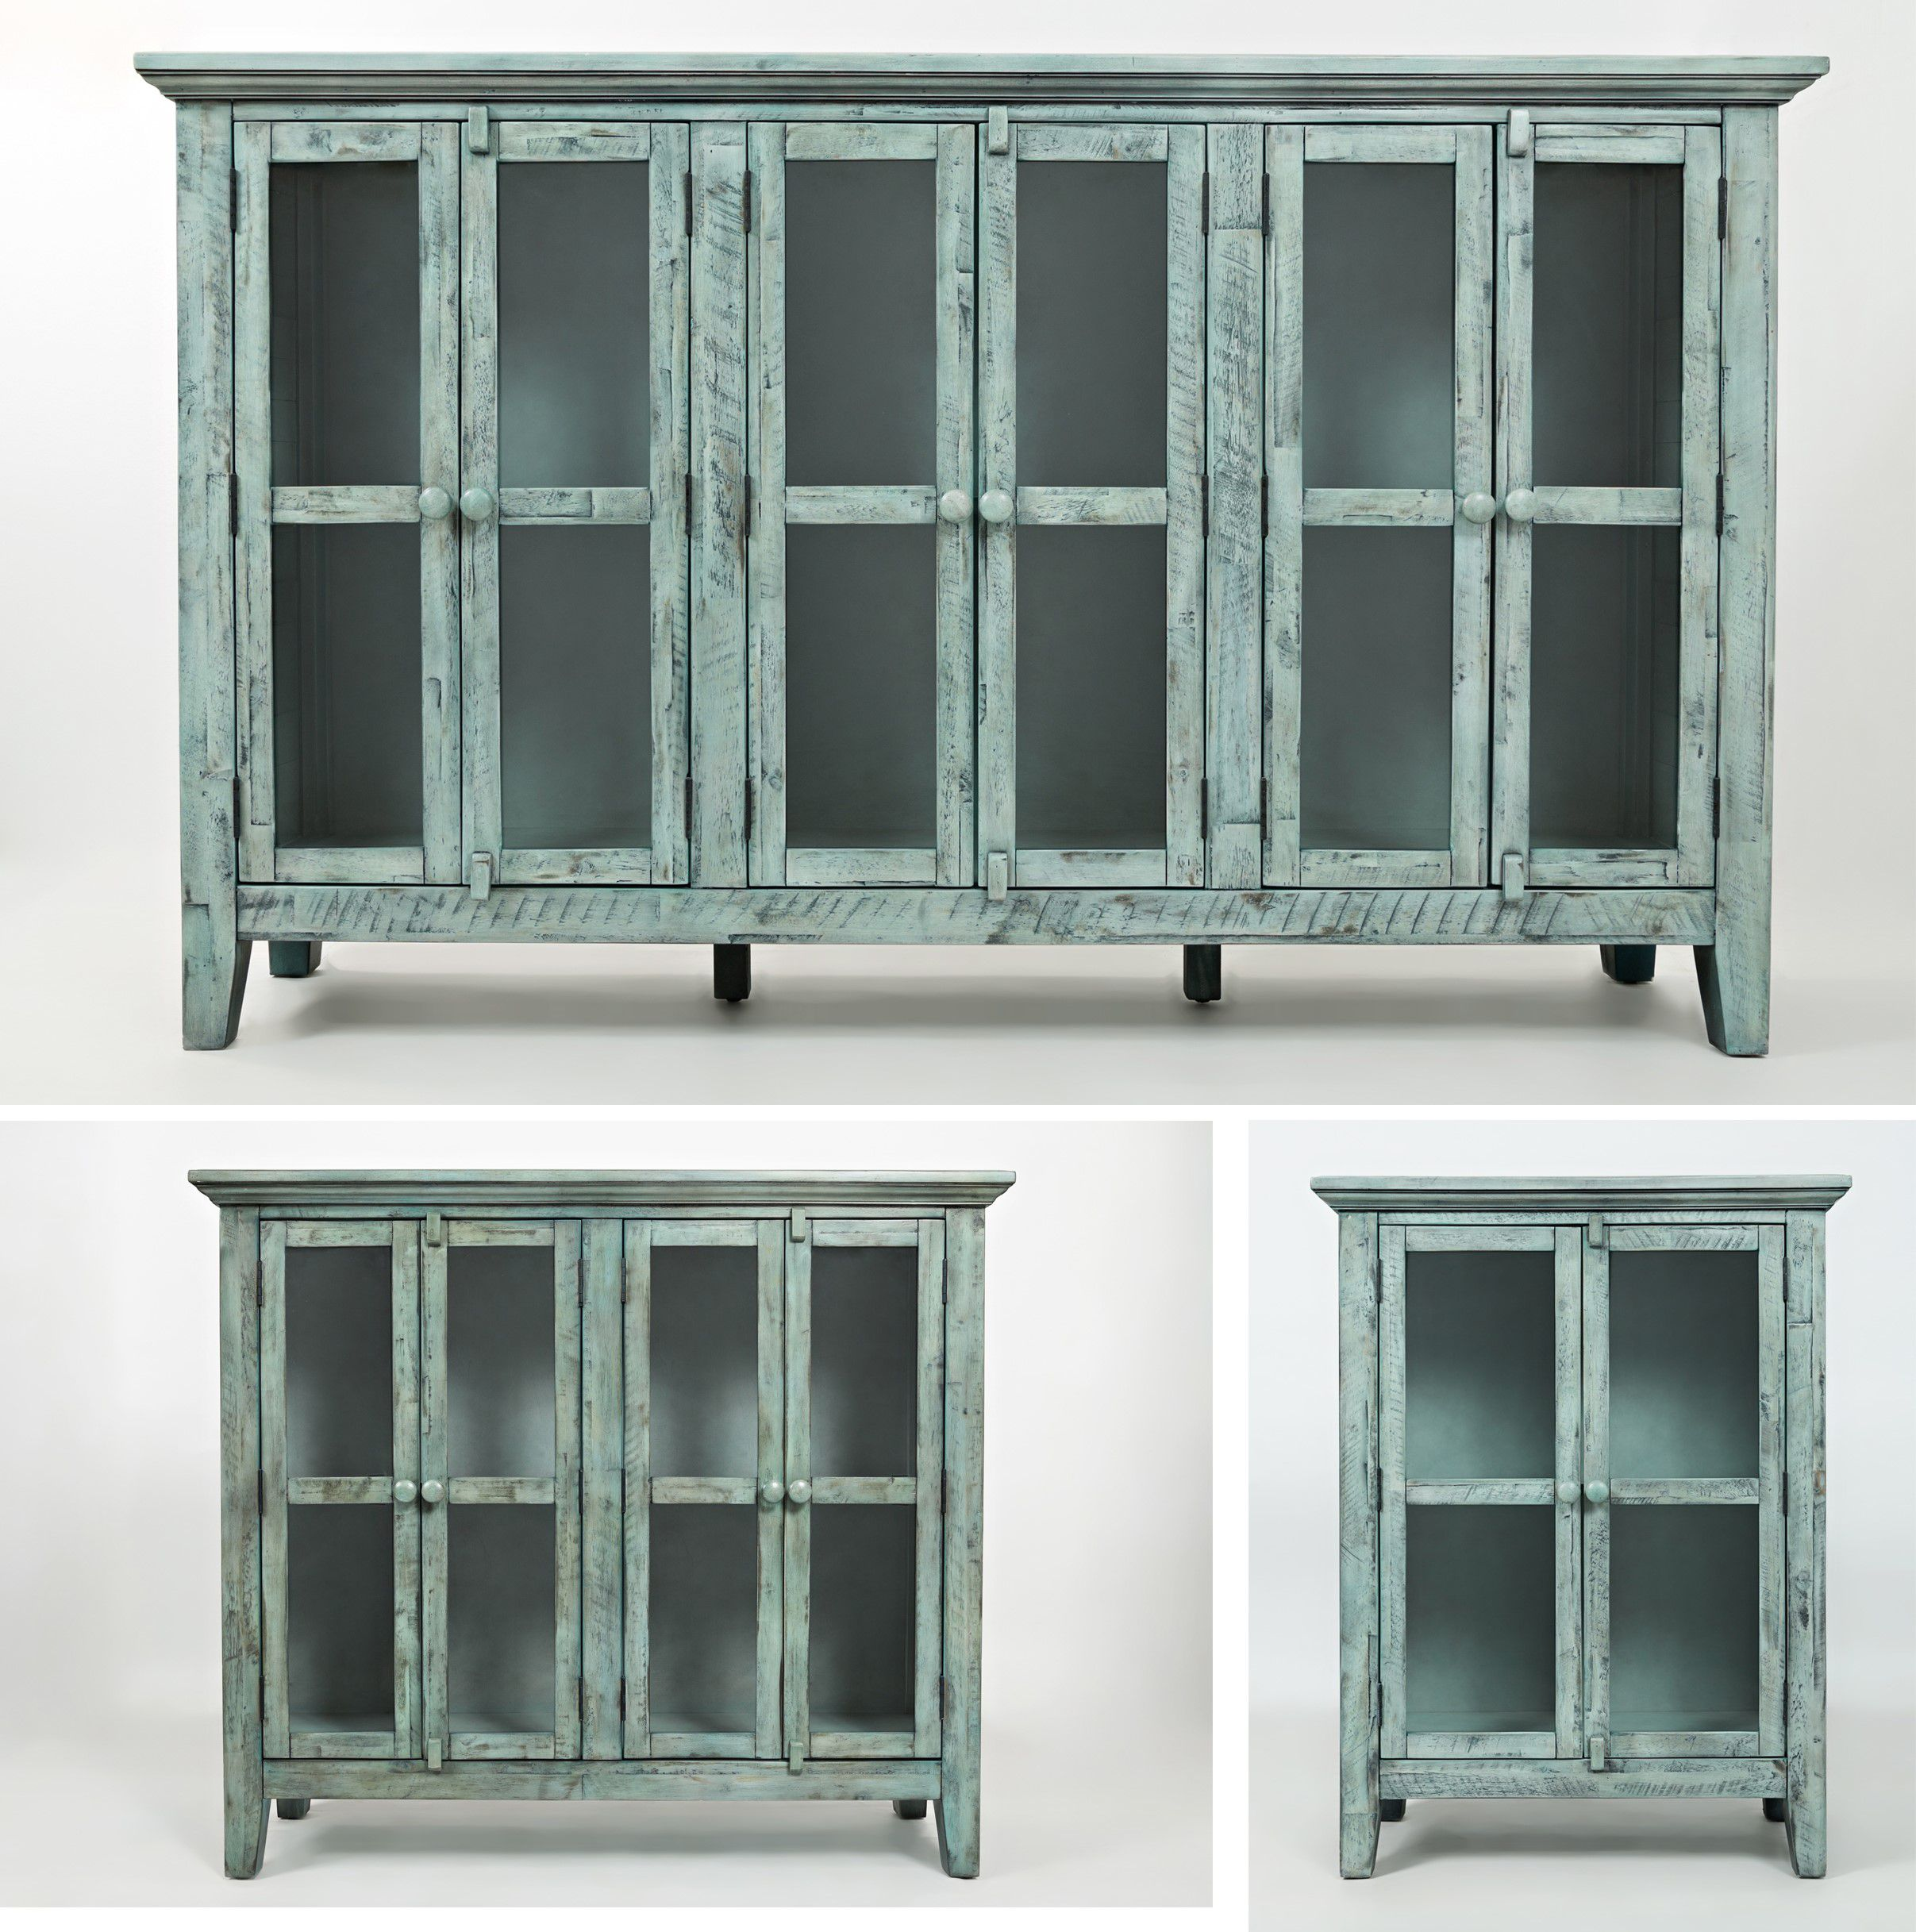 A blue console at Oak Factory Outlet Furniture Store in Nashville, TN, from bedroom furniture to dining furniture, we have it all!